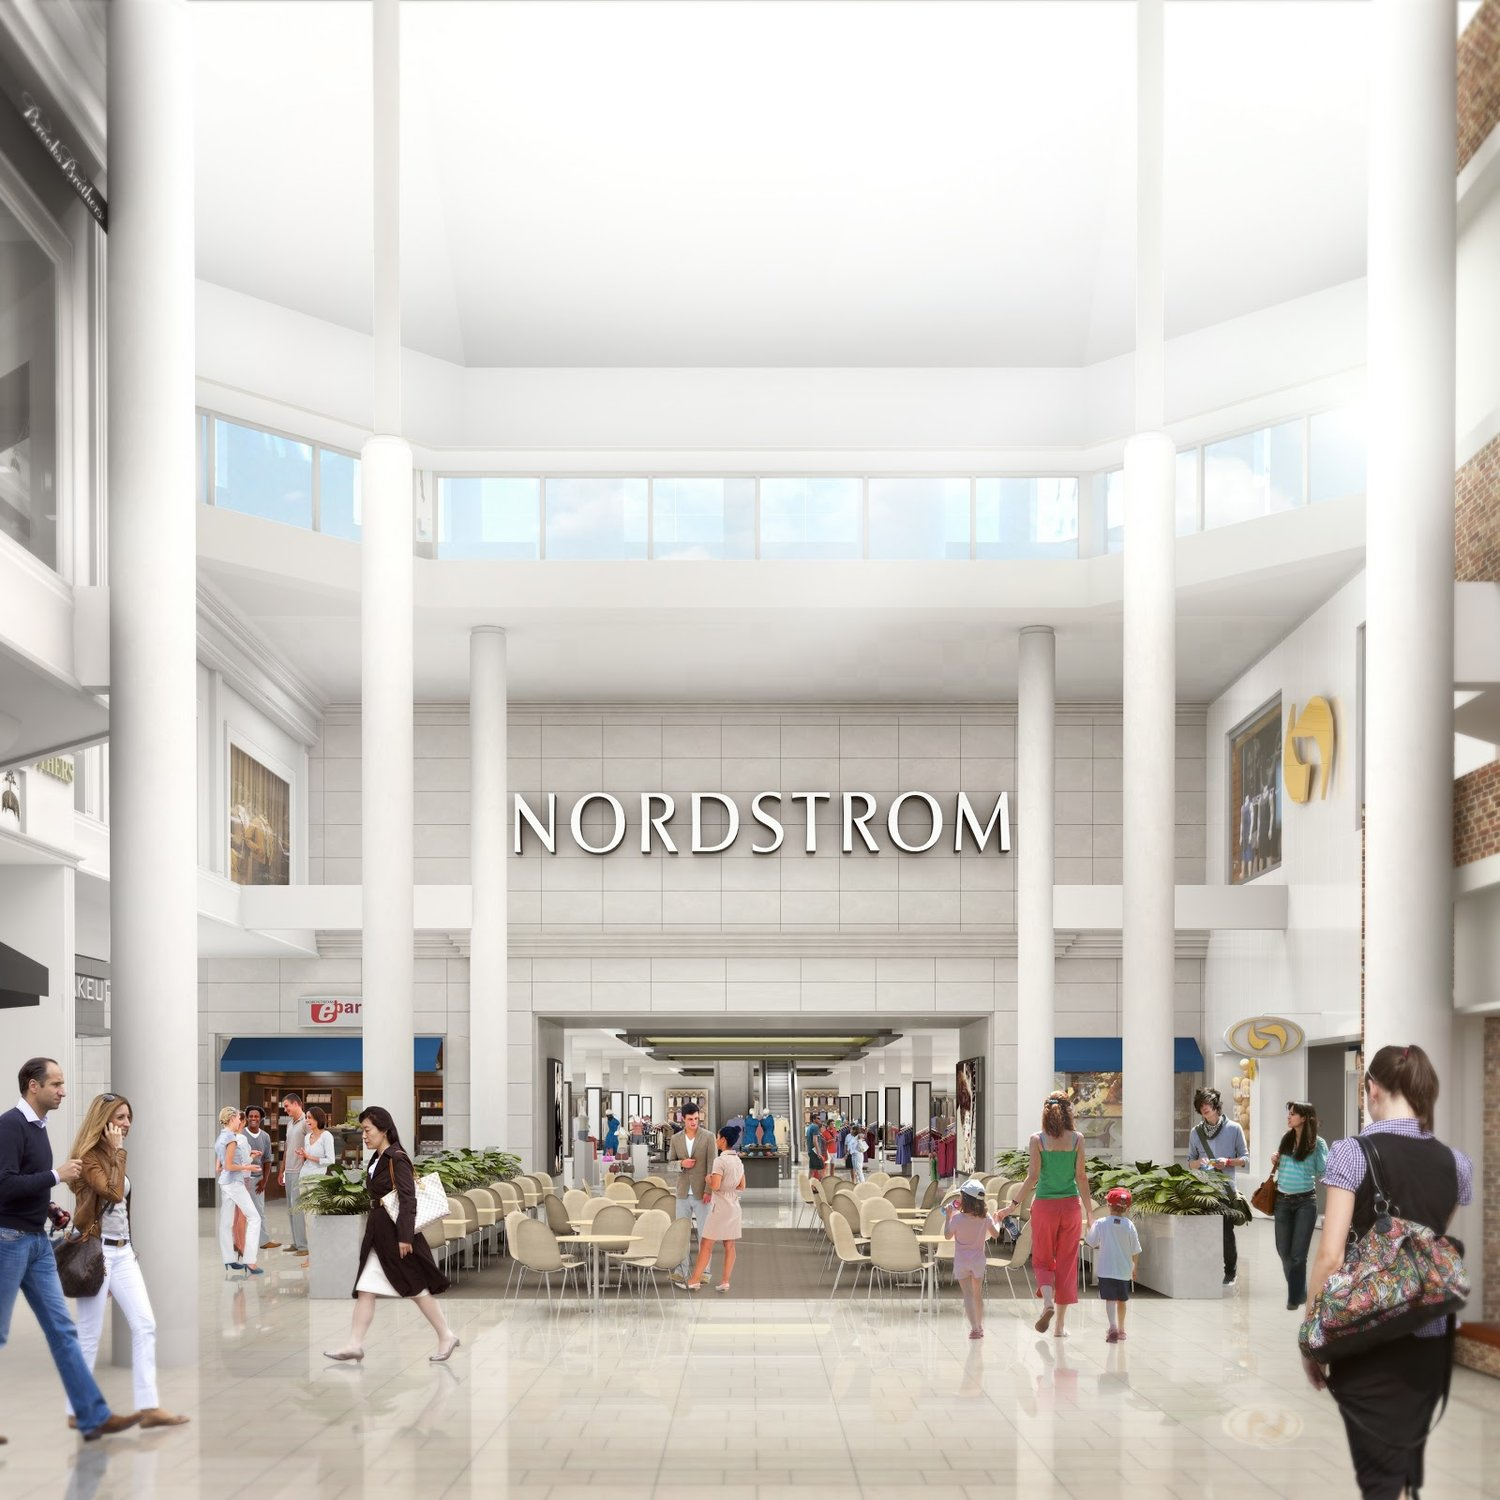 Cadillac Fairview Prepares to Unveil CF Sherway Gardens Nordstrom Expansion Wing [Photos]